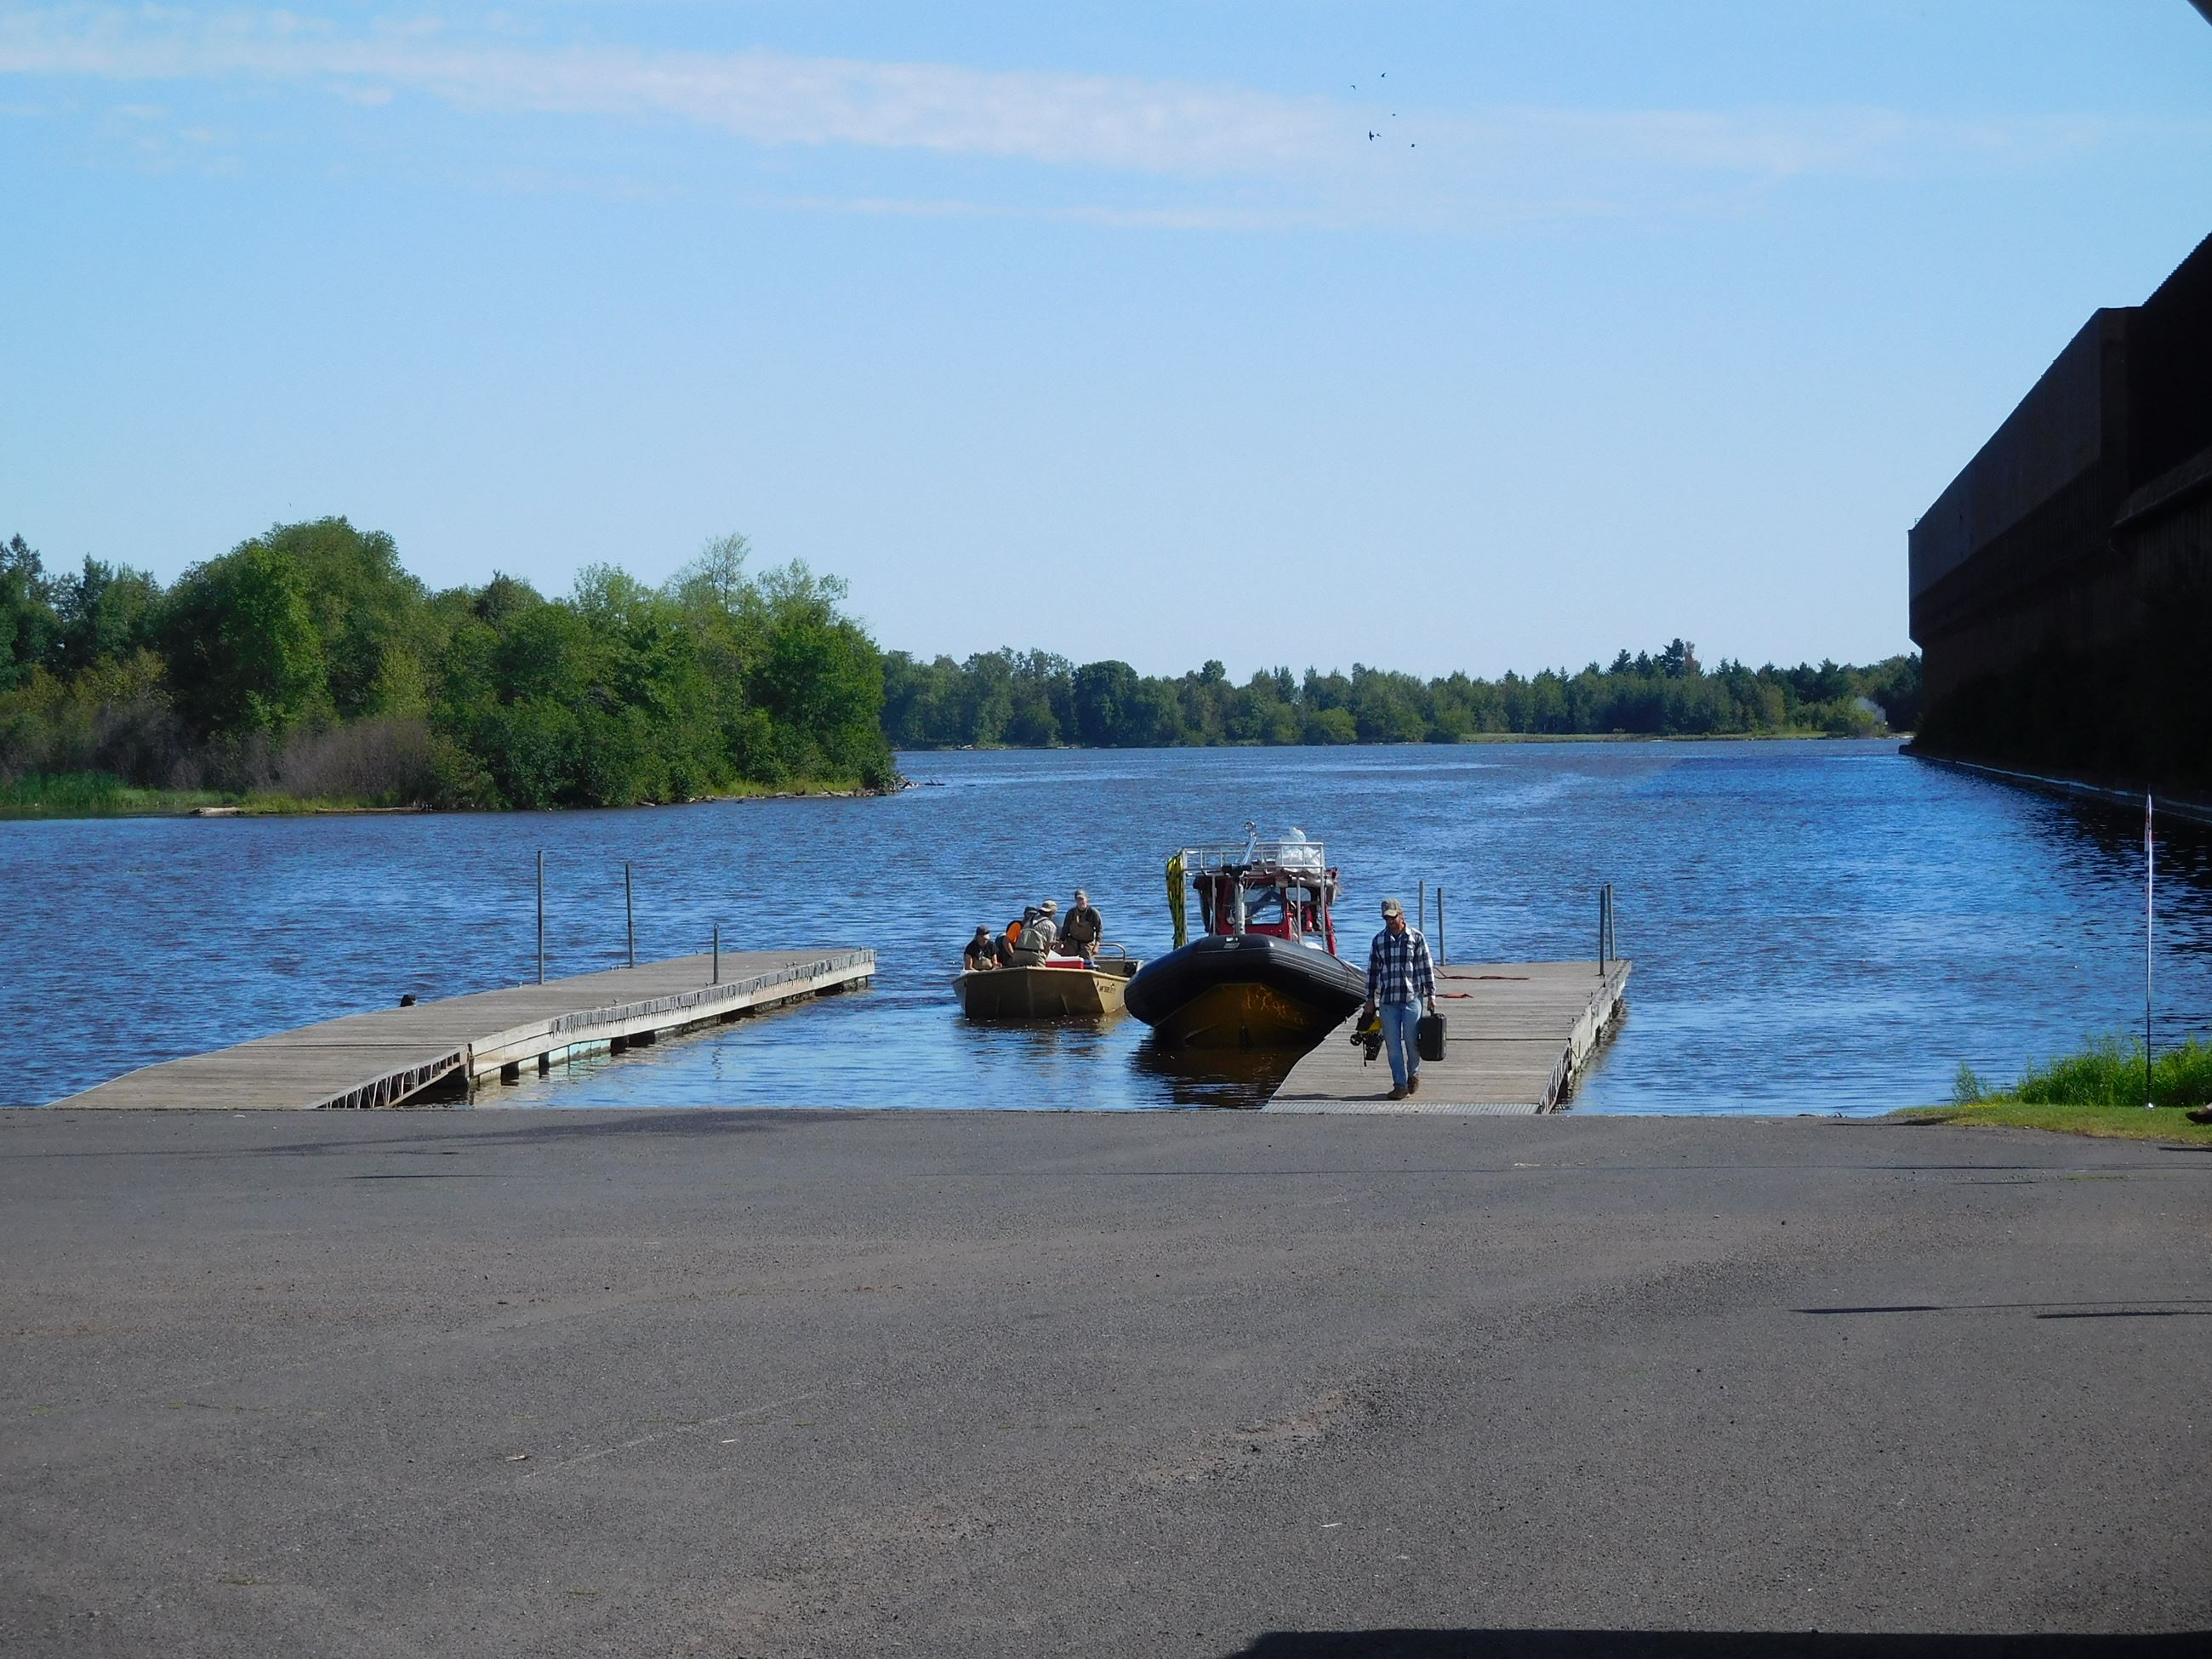 Loon's Foot Boat Launch - two docks and a boat with fisherman on dock